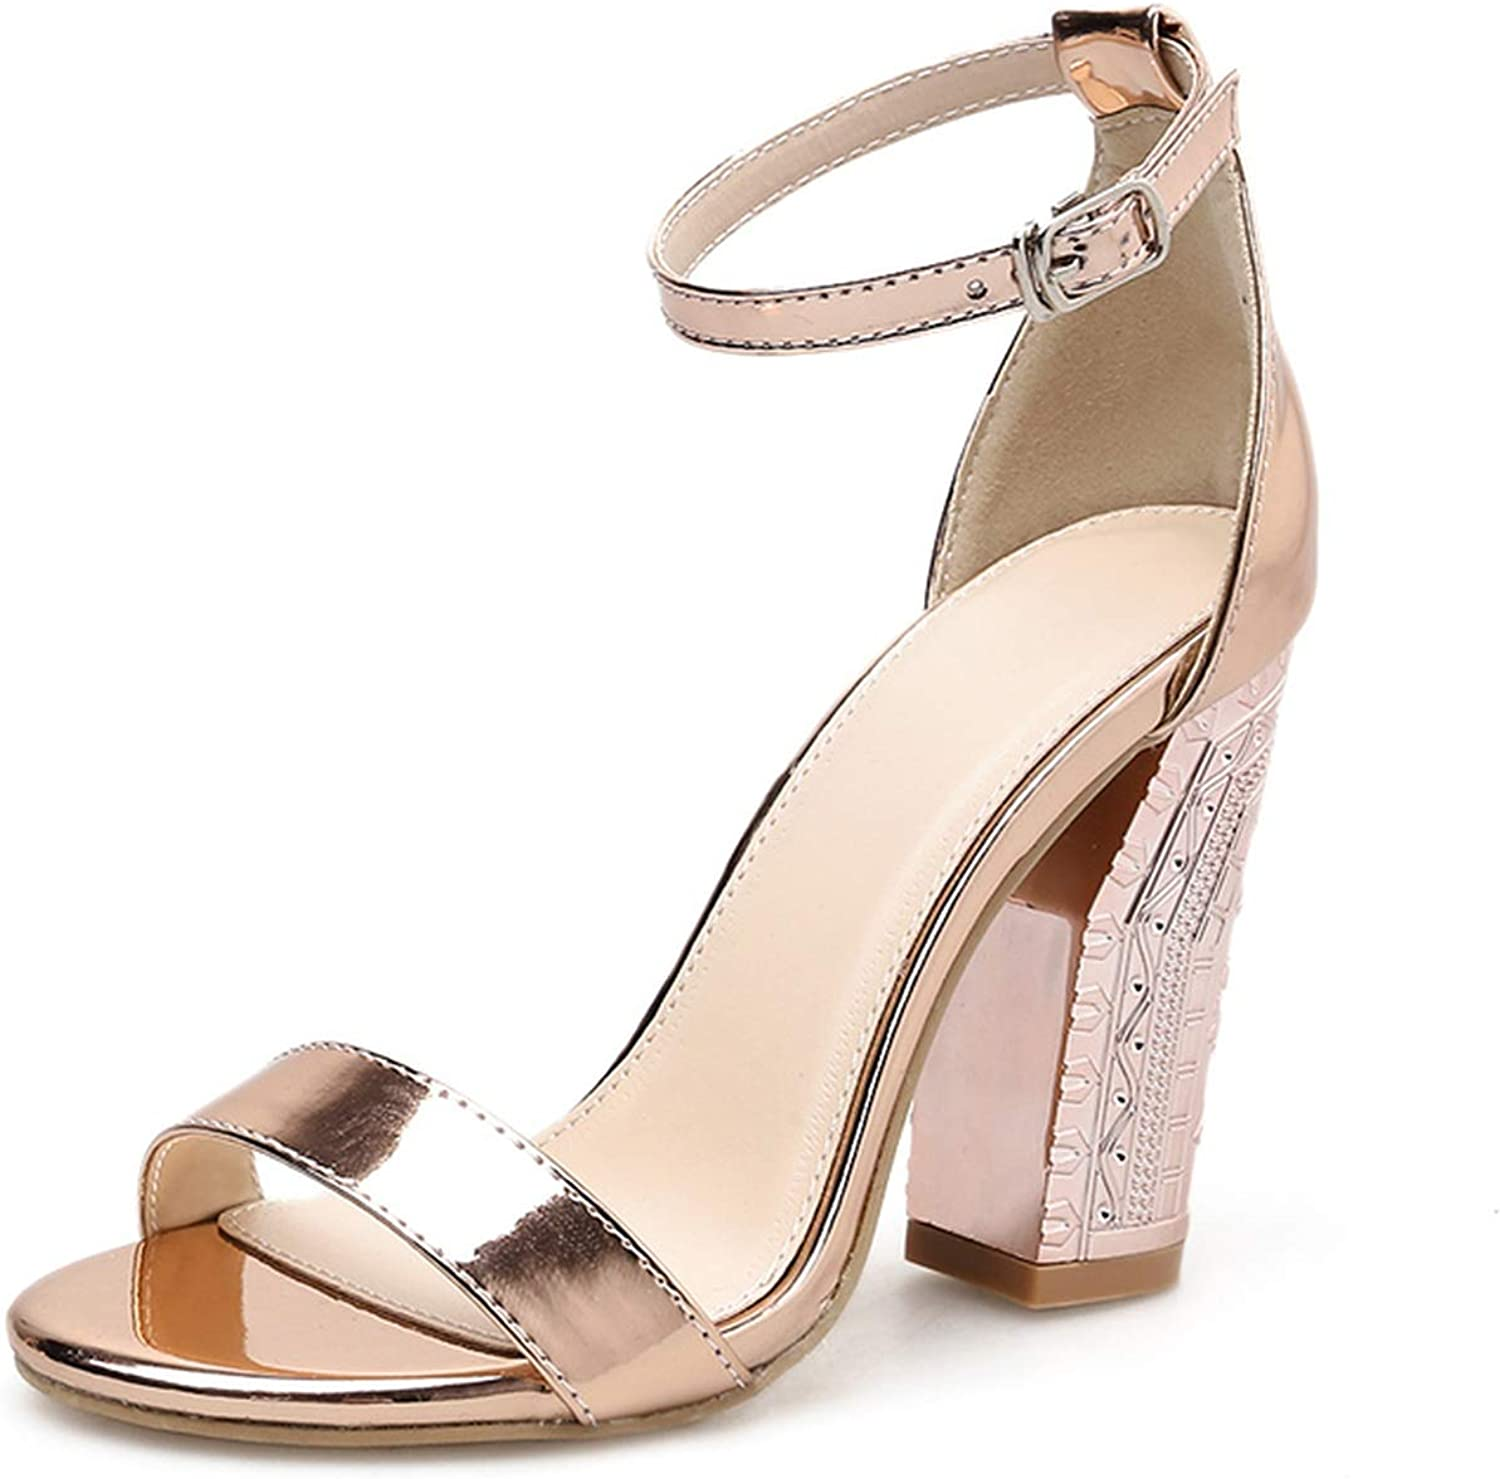 Elegant Sandals Summer 10.5cm High Heels Sandals Sexy Lady Party shoes